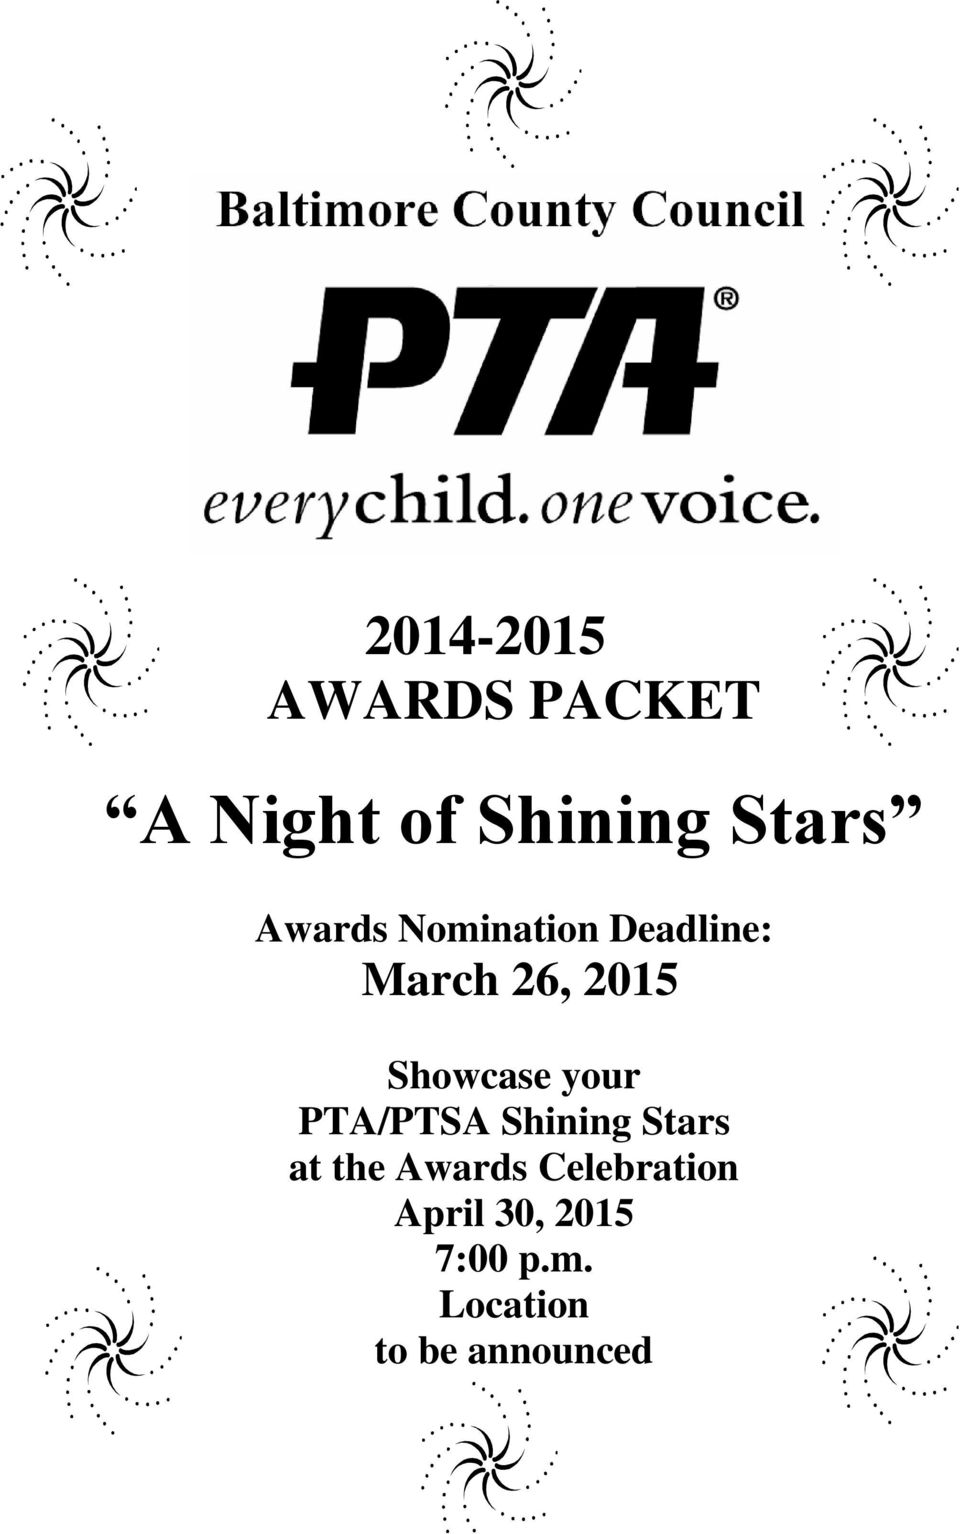 Showcase your PTA/PTSA Shining Stars at the Awards